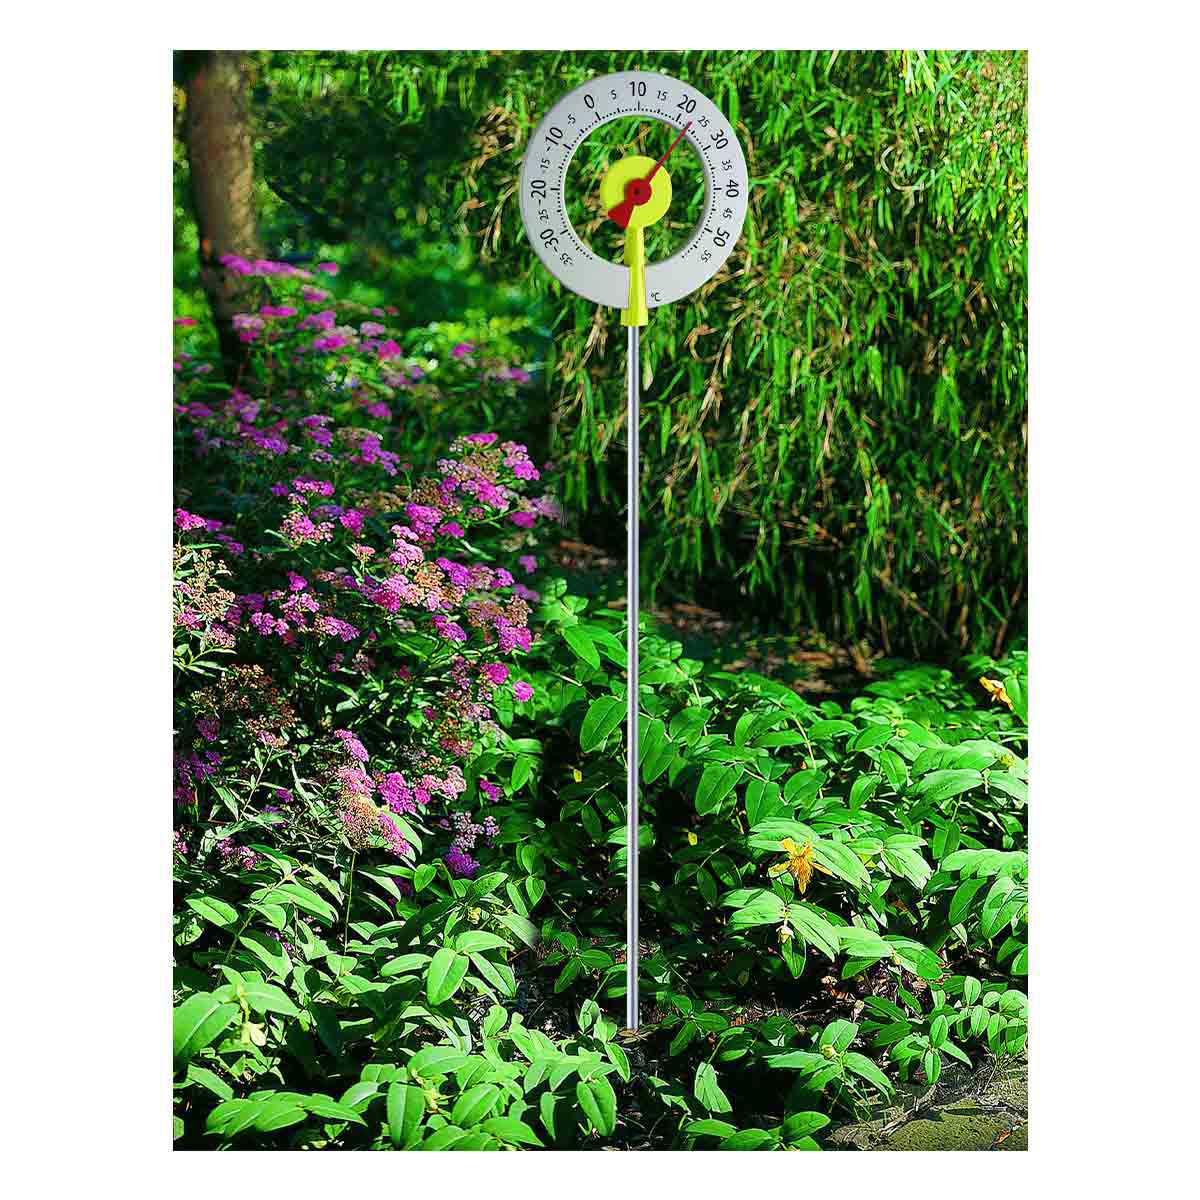 12-2055-07-analoges-design-gartenthermometer-lollipop-anwendung-1200x1200px.jpg